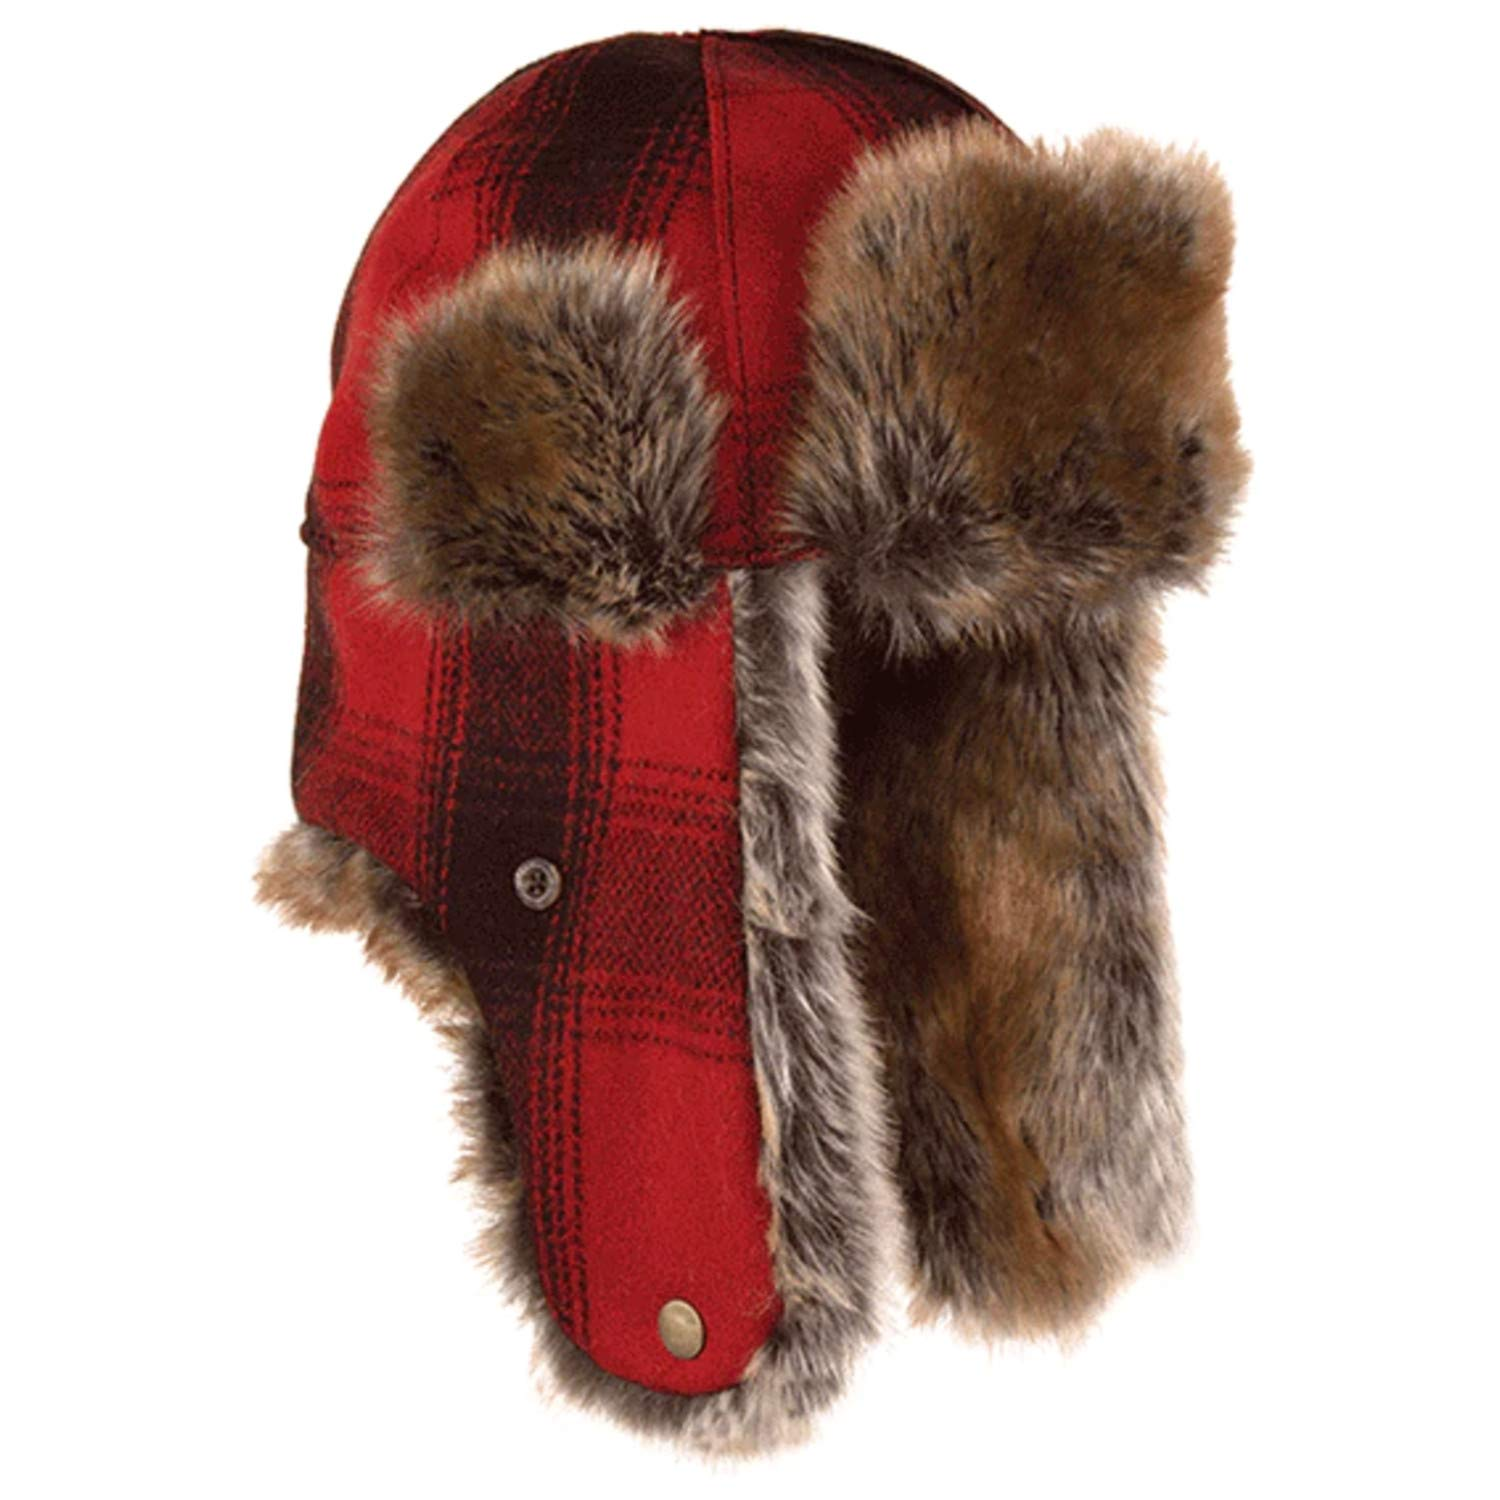 Stormy Kromer Mercantile The Northwoods Trapper Hat Red/Black Plaid, XL by Stormy Kromer